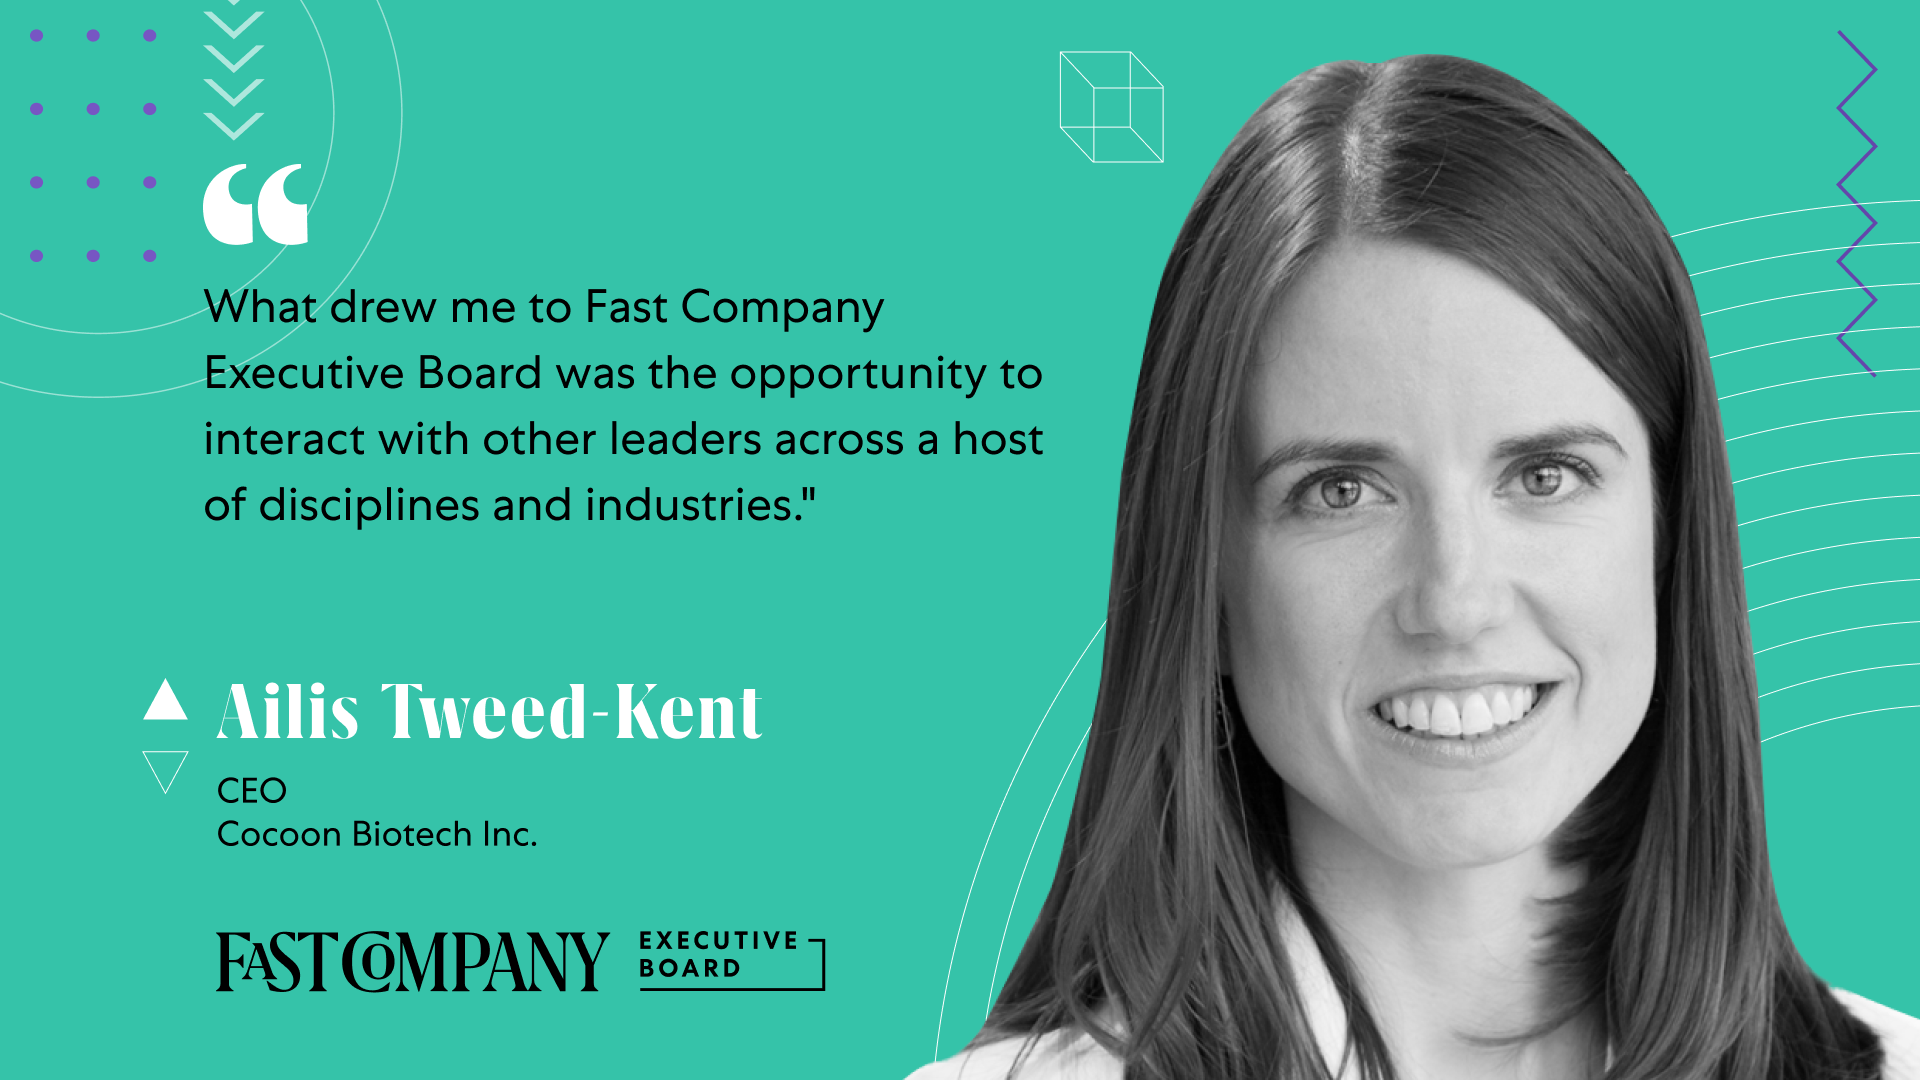 Ailis Tweed-Kent Says Fast Company Executive Board Will Give Her Access to a Brain Trust of Leaders in a Variety of Industries